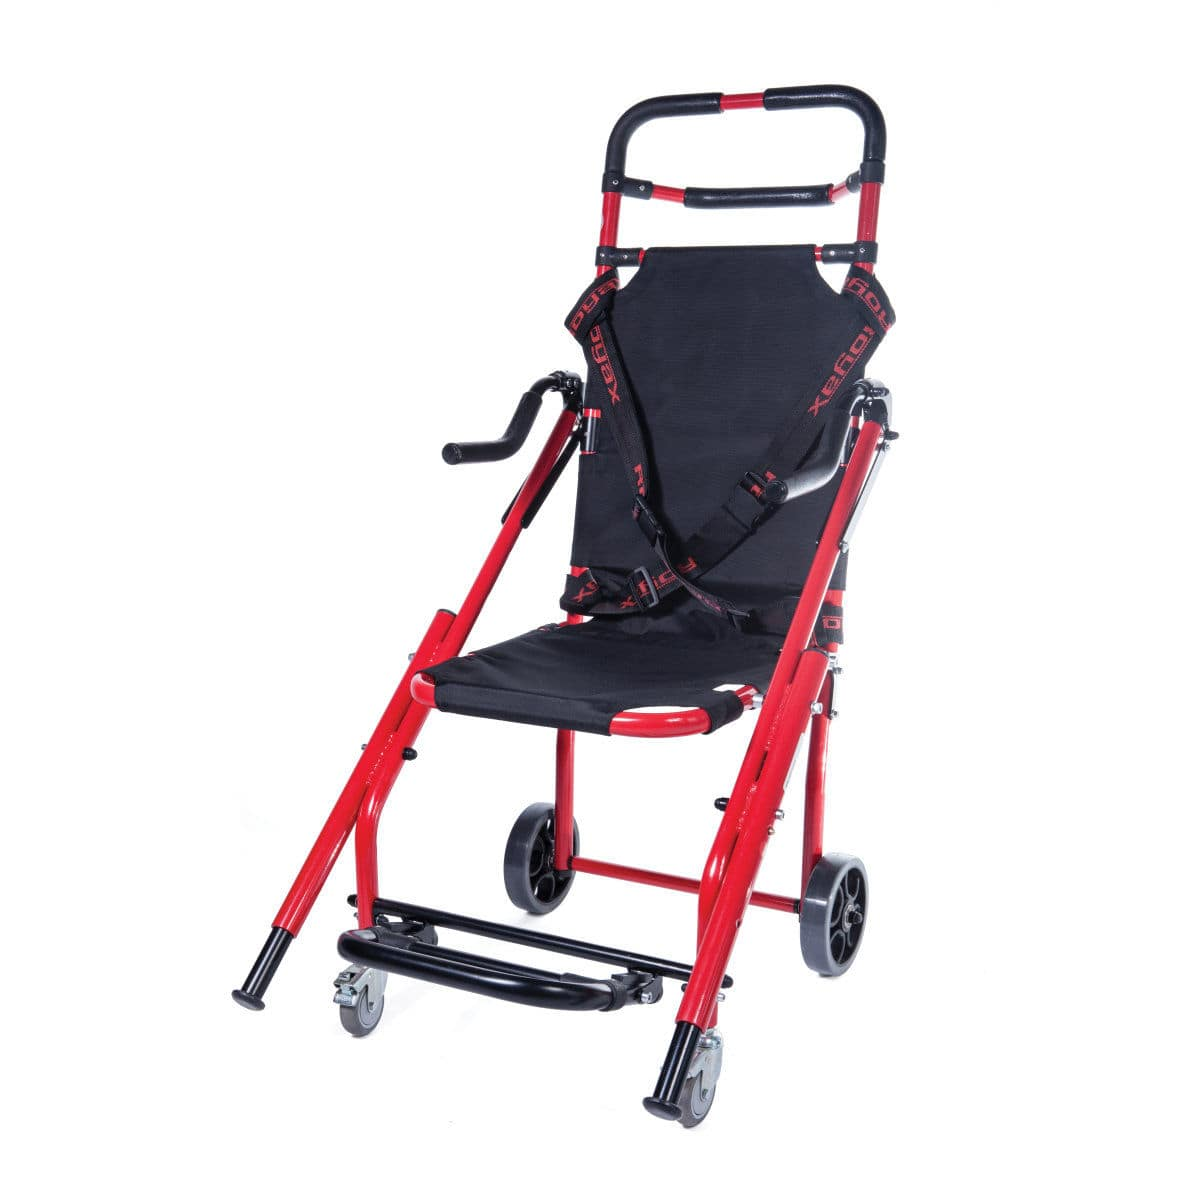 stair-climbing transfer chair / on casters / folding - Stairmann  sc 1 st  MedicalExpo & Stair-climbing transfer chair / on casters / folding - Stairmann - ROYAX